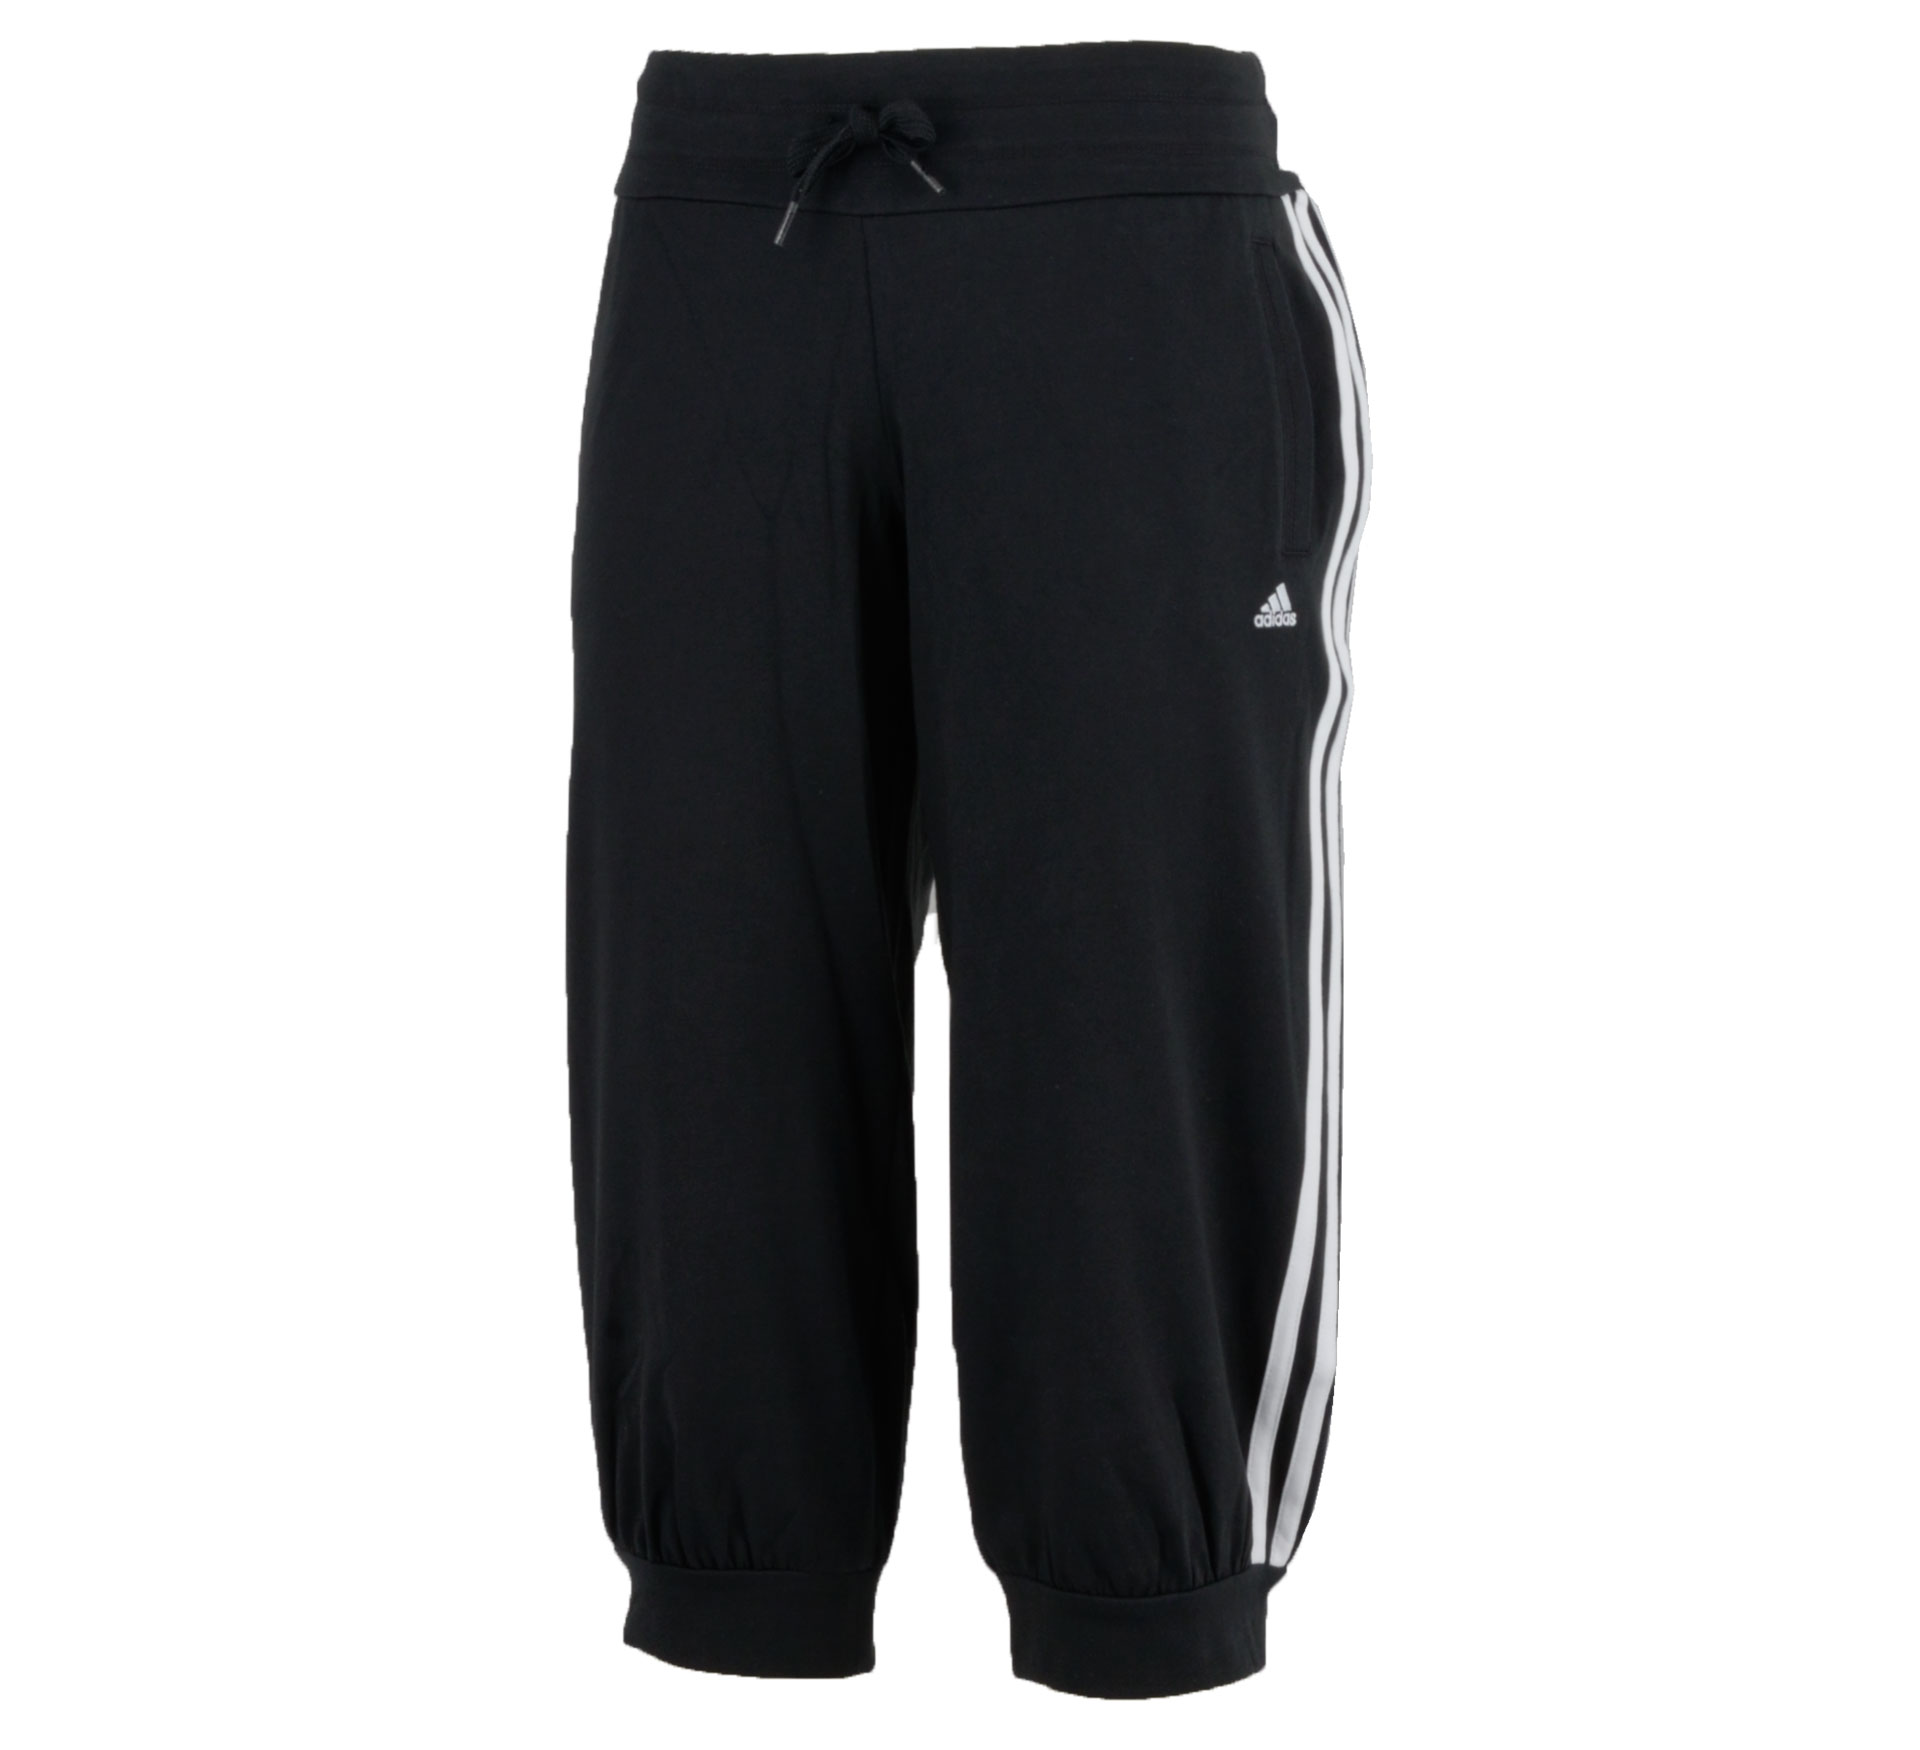 Adidas Essentials 3Stripe 3/4 Broek Dames zwart - wit